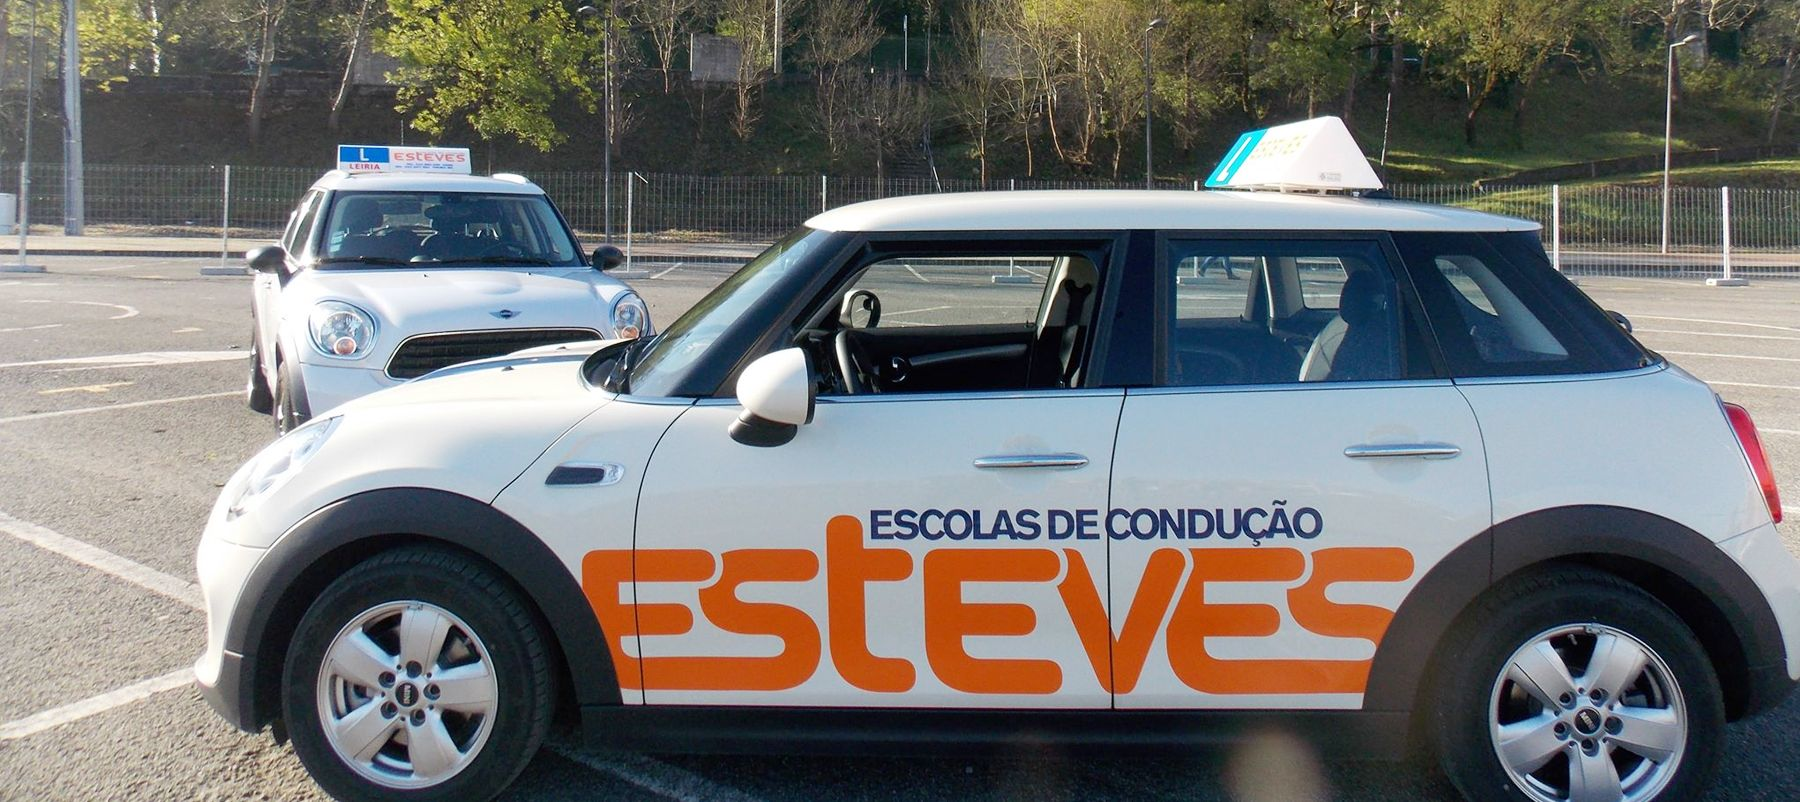 Escola Esteves